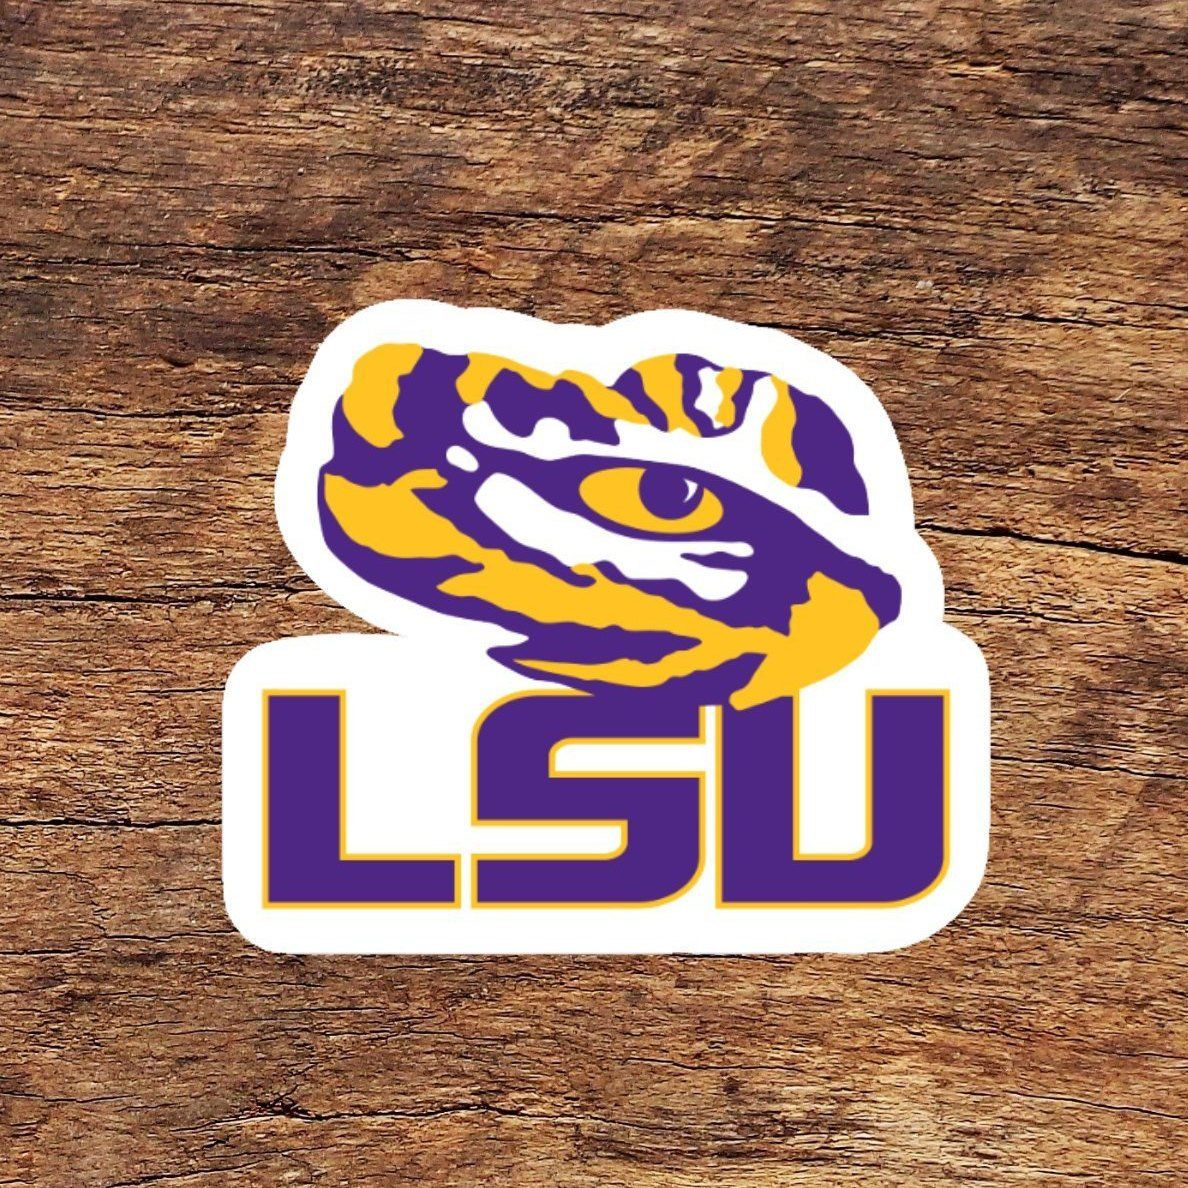 Excited To Share The Latest Addition To My Etsy Shop Louisiana State University Tigers Vinyl Sticker Peel And Stick Phone Decals Vinyl Sticker Vinyl Decals [ 1188 x 1188 Pixel ]